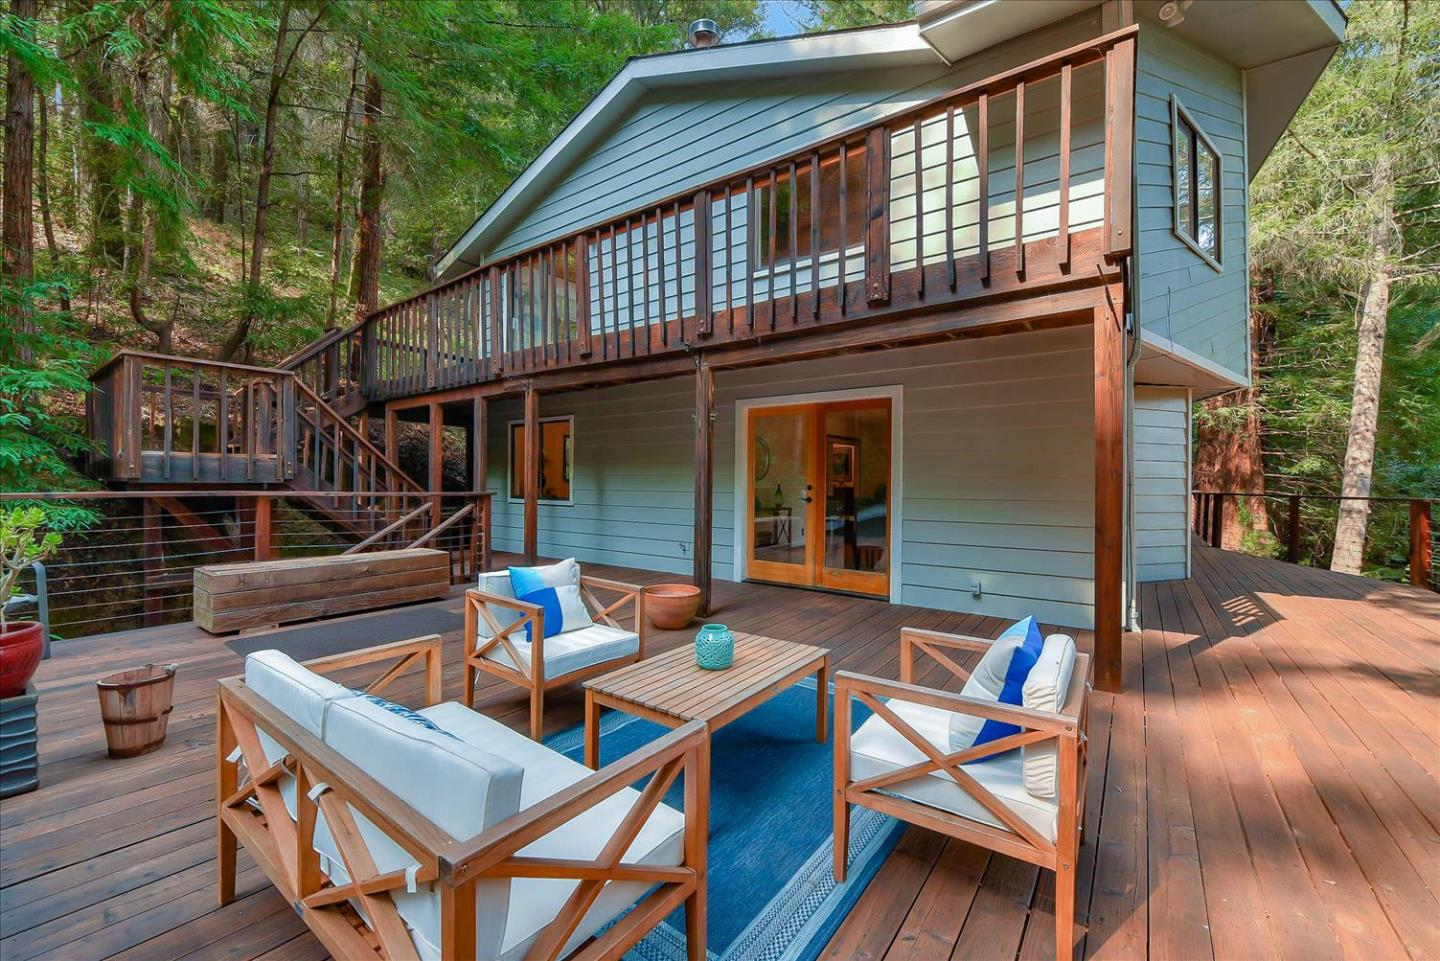 Magnificent Mountains! Spacious is an understatement at 403 Rogers Road. This beautiful mountain chalet sits on over 12 acres of pristine land with hiking trails, hidden flagstone patios, peace, quiet, and complete end of the road privacy. Located in the highly desirable neighborhood at the top of Jarvis Road approximately 15-20 min to Santa Cruz, Los Gatos, Scotts Valley, and Soquel/Capitola. You will love the vaulted open beam ceilings, breathtaking forested views, and seamless flow between indoor and outdoor living spaces. The flexible floor plan accommodates multi-generational living, or those who need extra space for their every day living. With five bedrooms there are an abundance of possibilities for you to customize the space to your heart's desire...home office, gym, studio, hobby space, or long term guest rooms? Shown by appointment only. Please do not drive by. Call for your exclusive tour today. Shown following the covid safety precautions here: https://bit.ly/3h3Ob7o